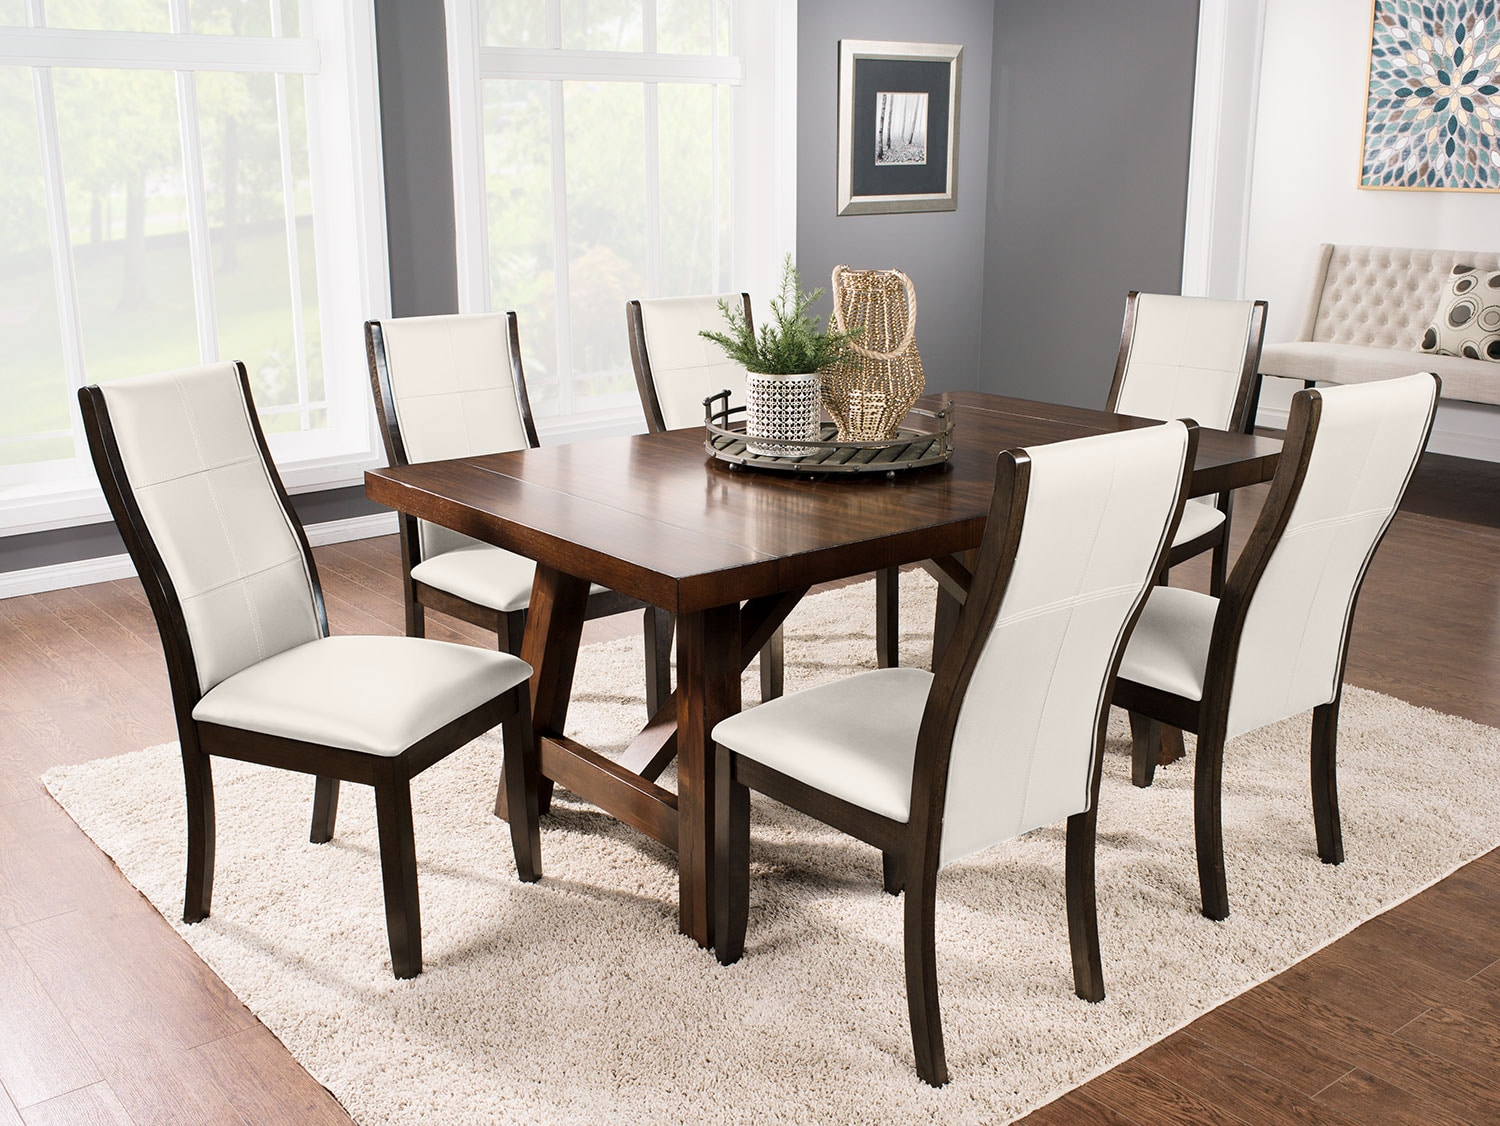 adara 7 piece dining package with tyler chairs taupe. Black Bedroom Furniture Sets. Home Design Ideas